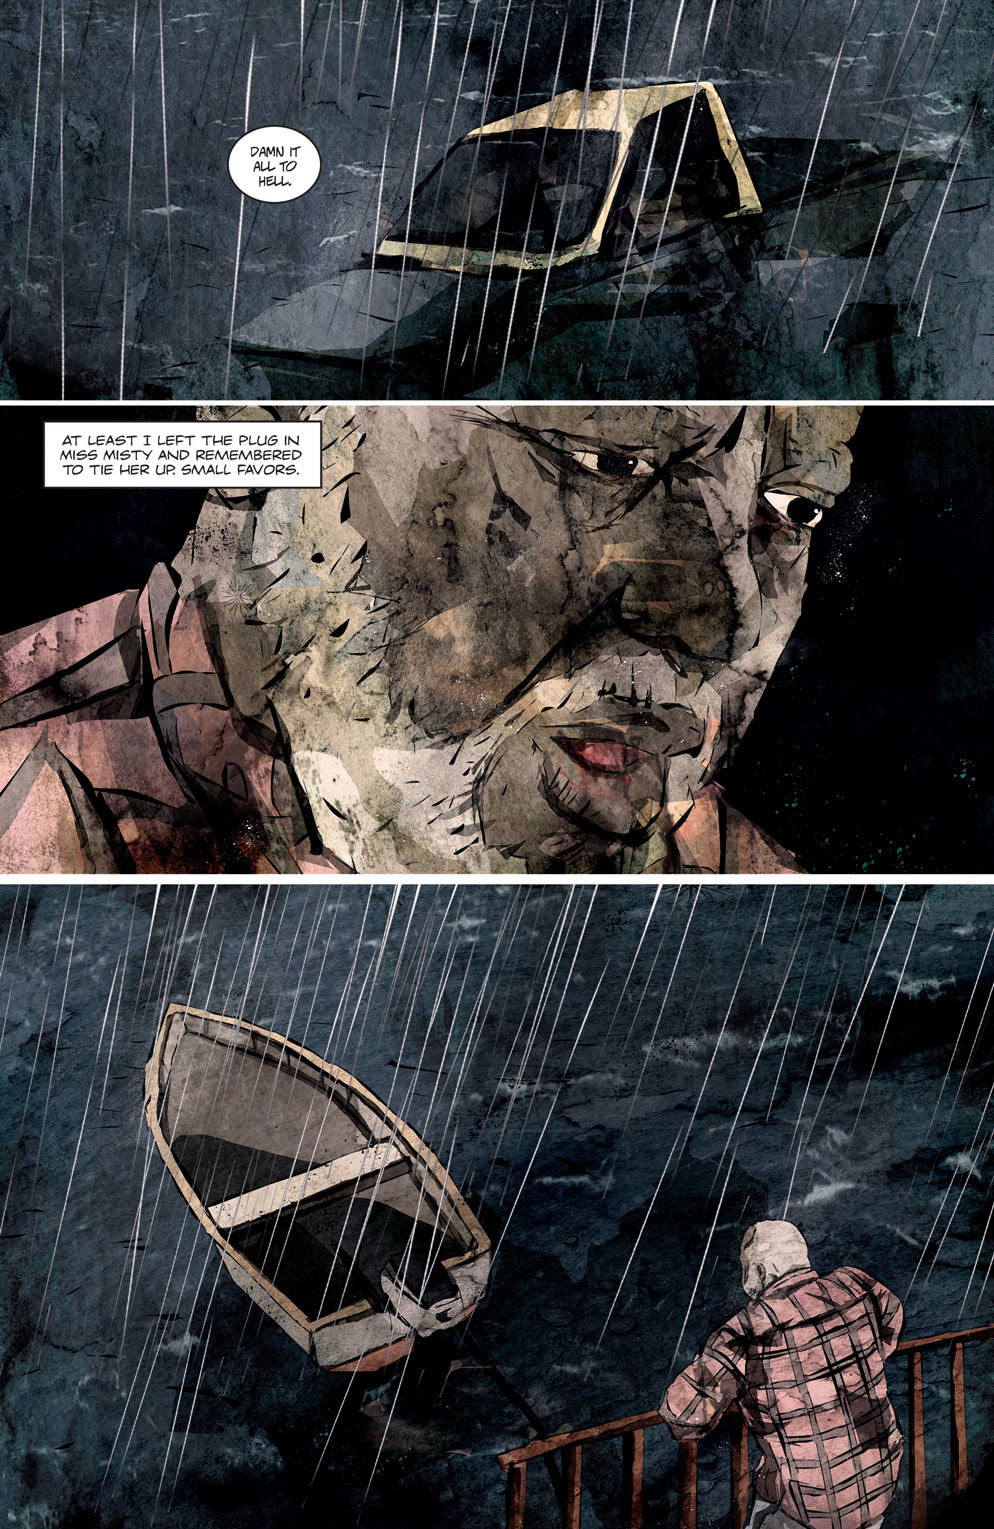 Hag 5 - Official Preview Pages from HAG #1 from American Gothic Press